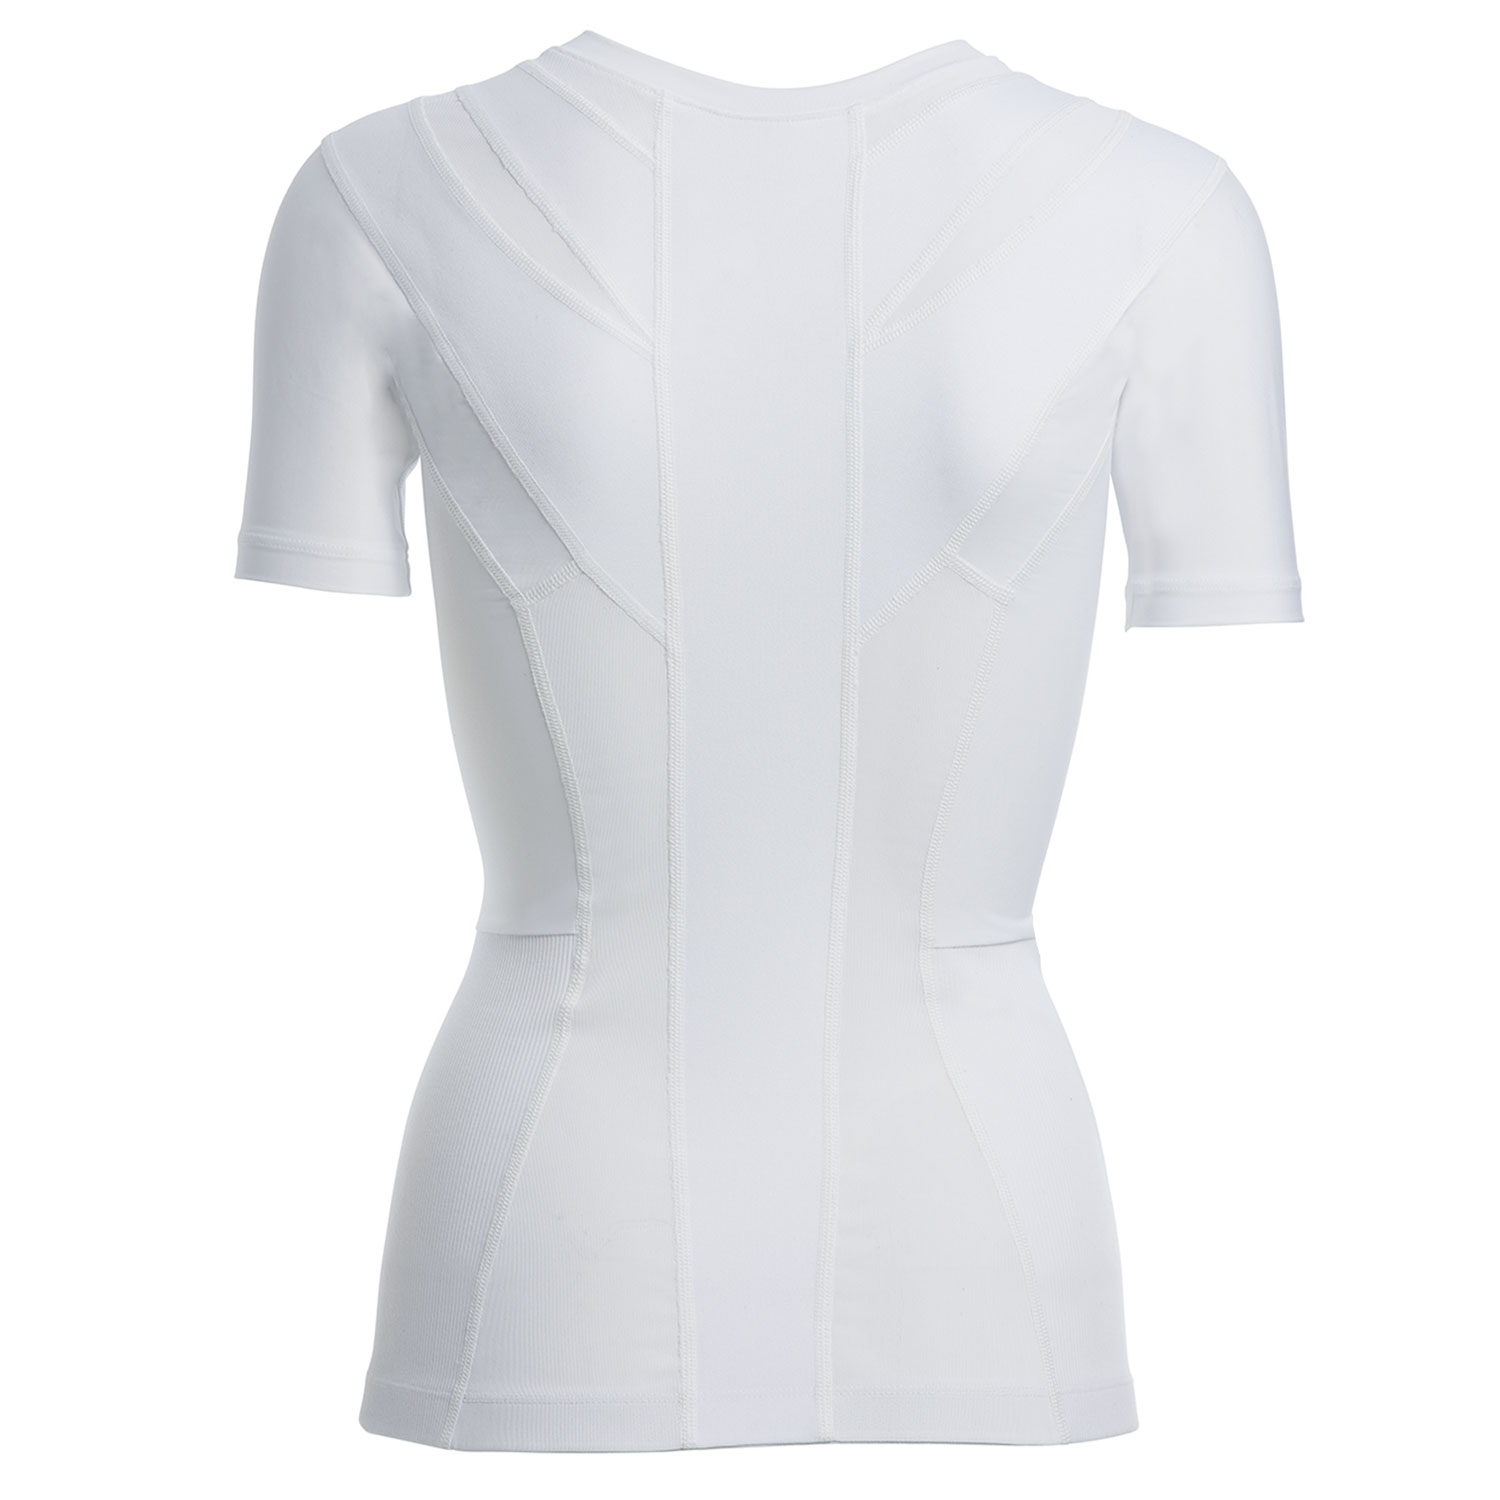 Image of   Women's Posture Shirt 2.0 (hvid) Large